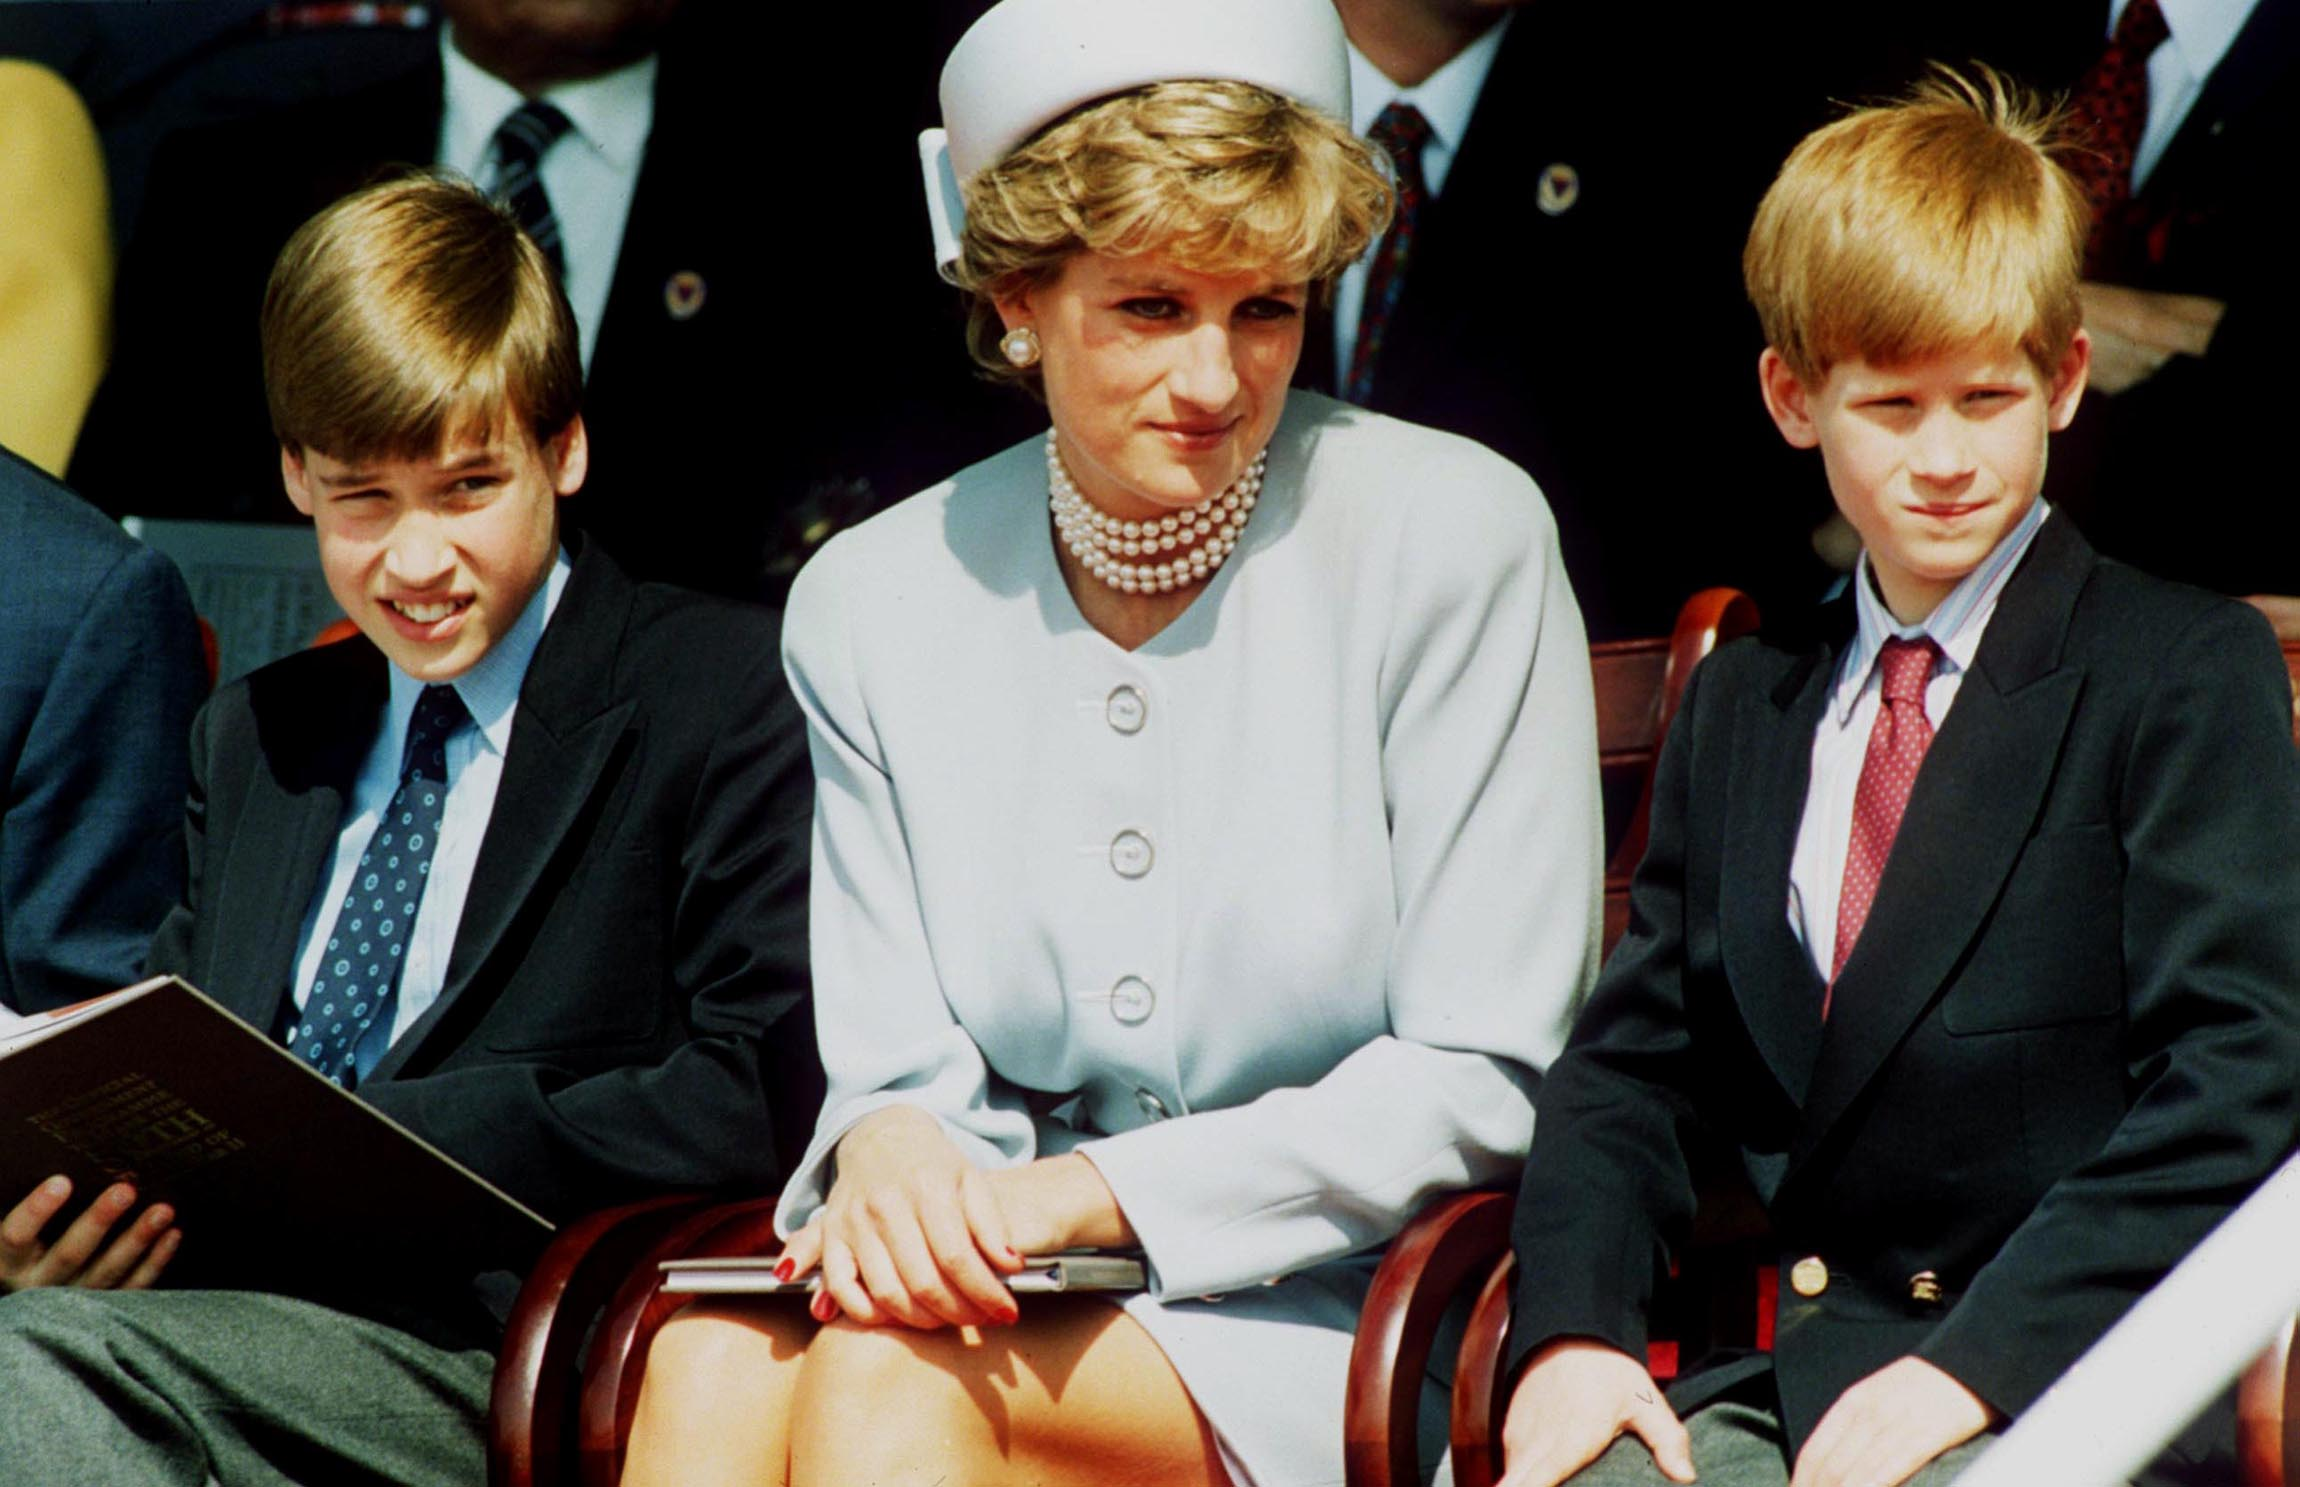 The late Princess Diana, a young Prince Charles and Prince Harry | Photo: Getty Images